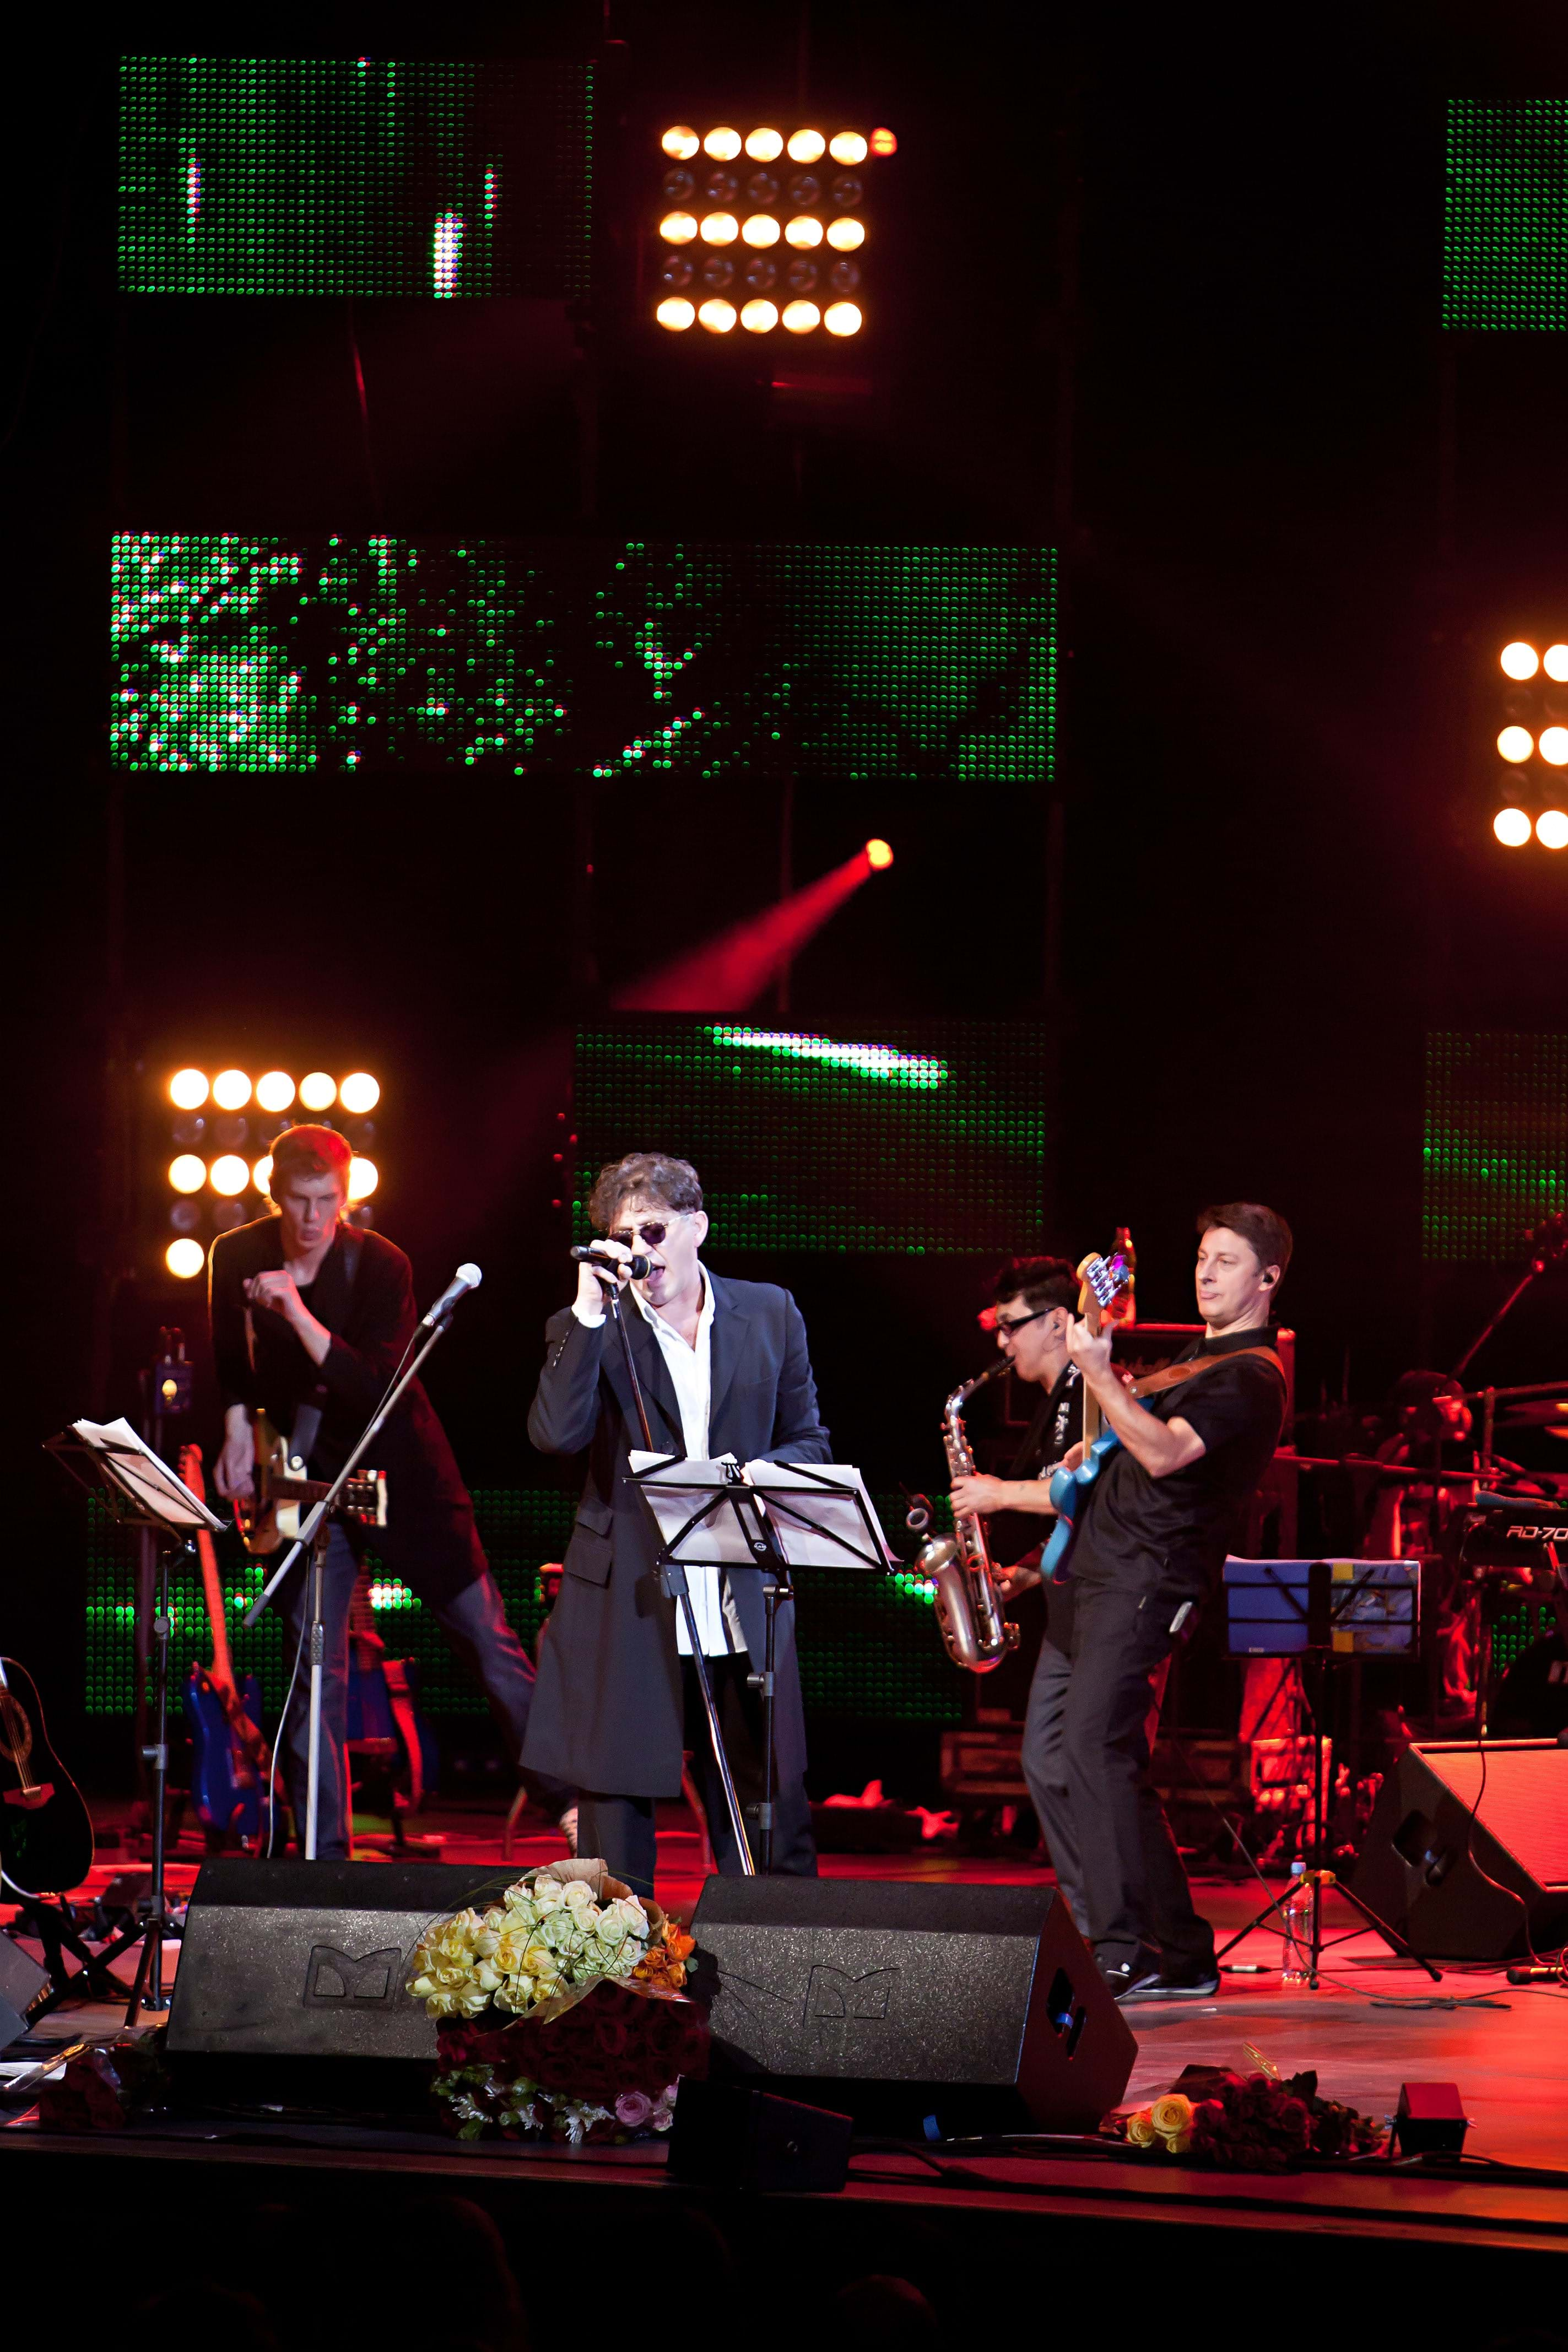 2011.12.16 - Grigory Leps and Alexander Rozenbaum - Kremlin Palace